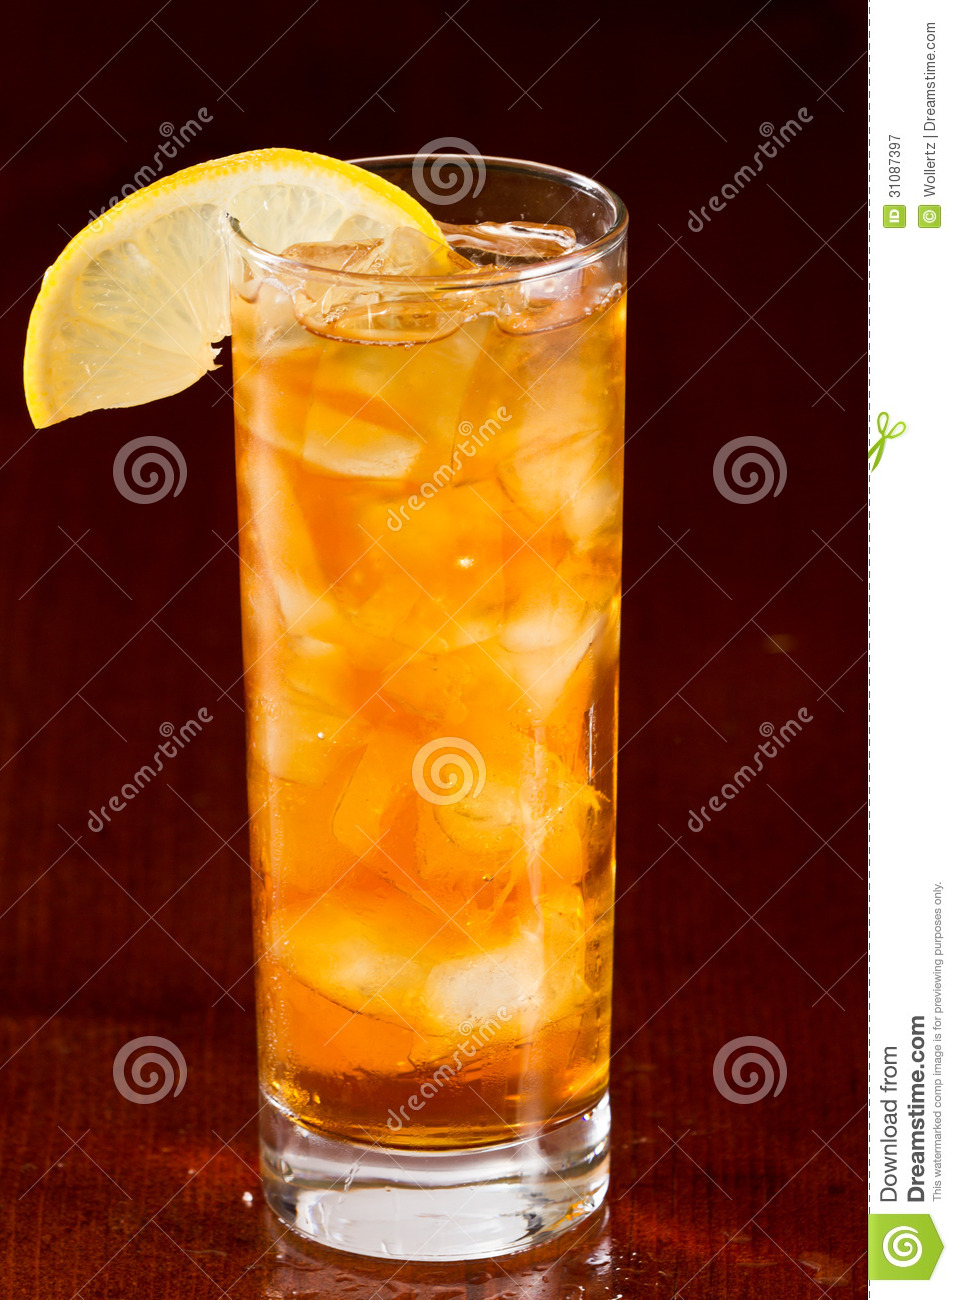 What Booze Is In A Long Island Iced Tea